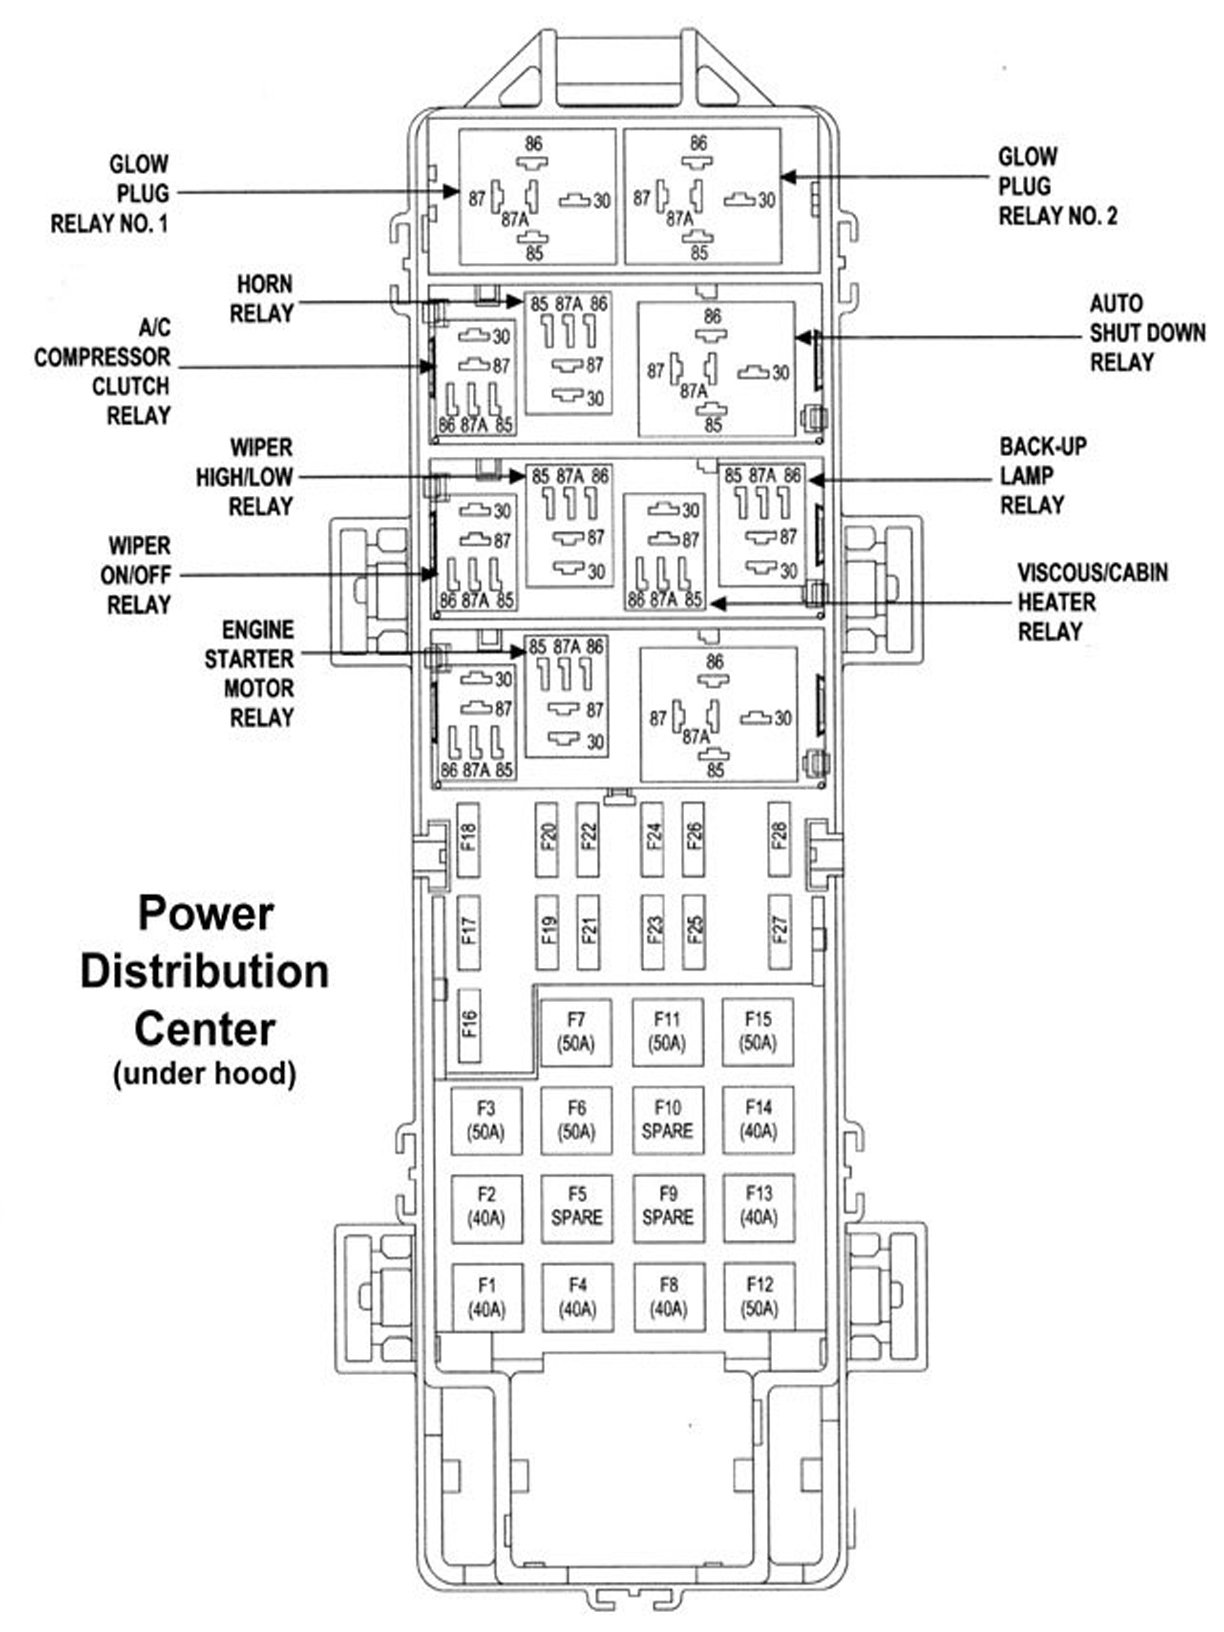 Jeep Grand Cherokee 1999 2004 Fuse Box Diagram 397760 on jeep cherokee fuse box diagram